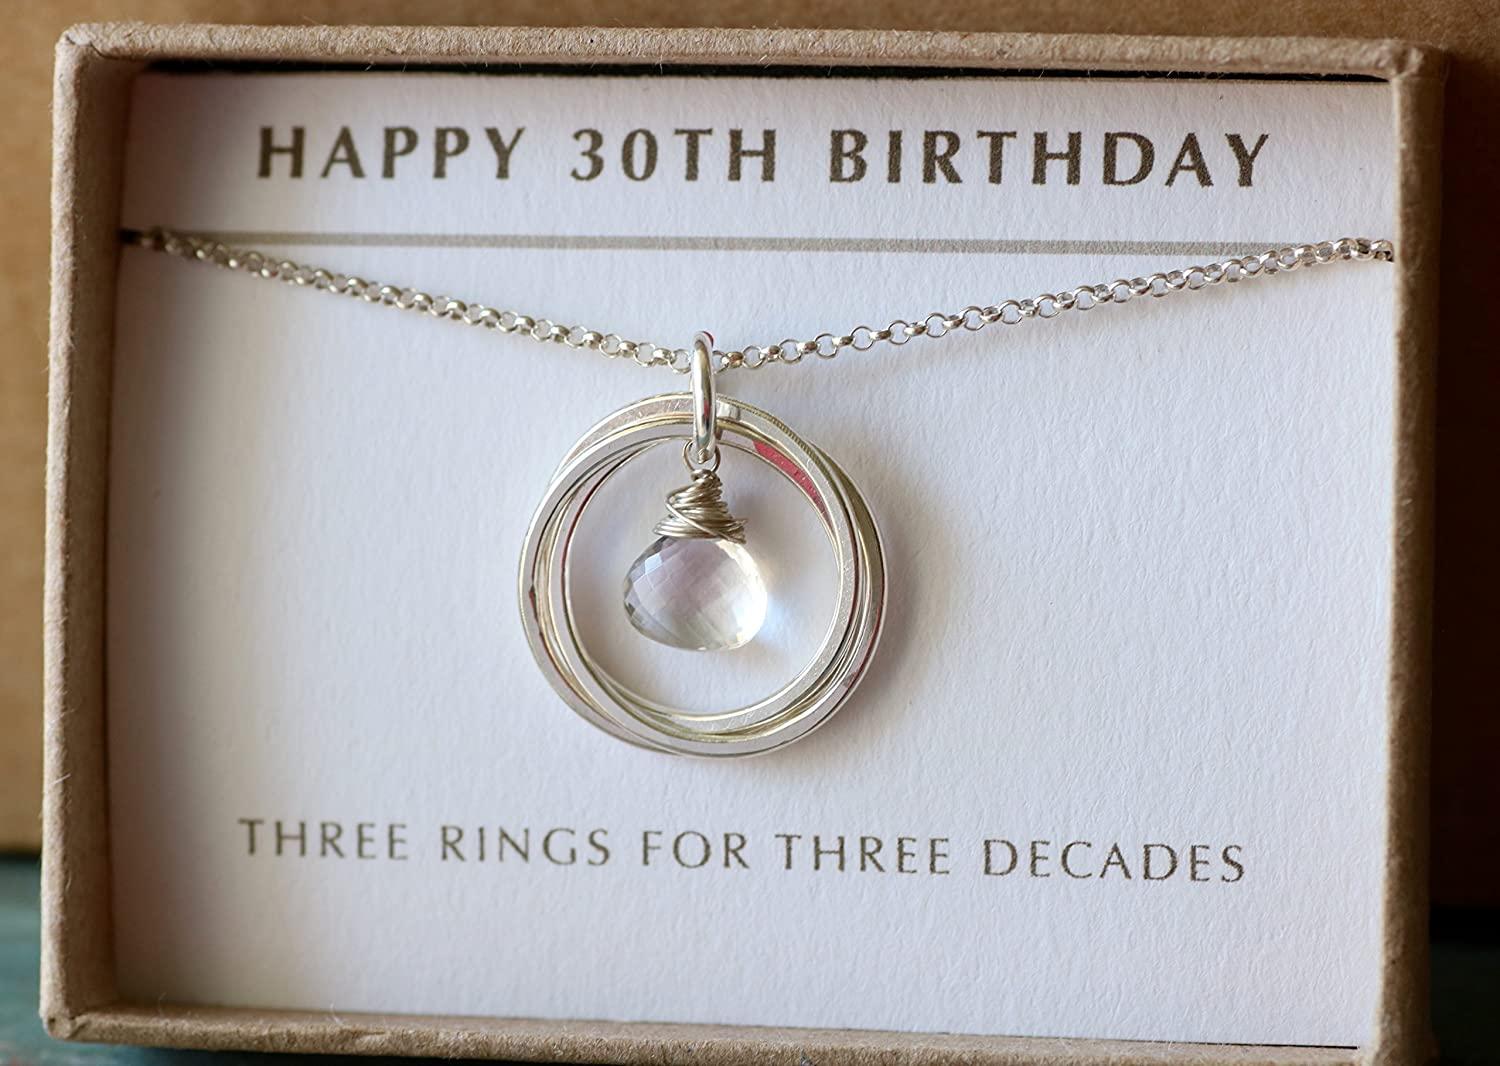 30th Birthday Gift For Daughter April Birthstone Jewellery Rock Crystal Necklace Sister Girlfriend